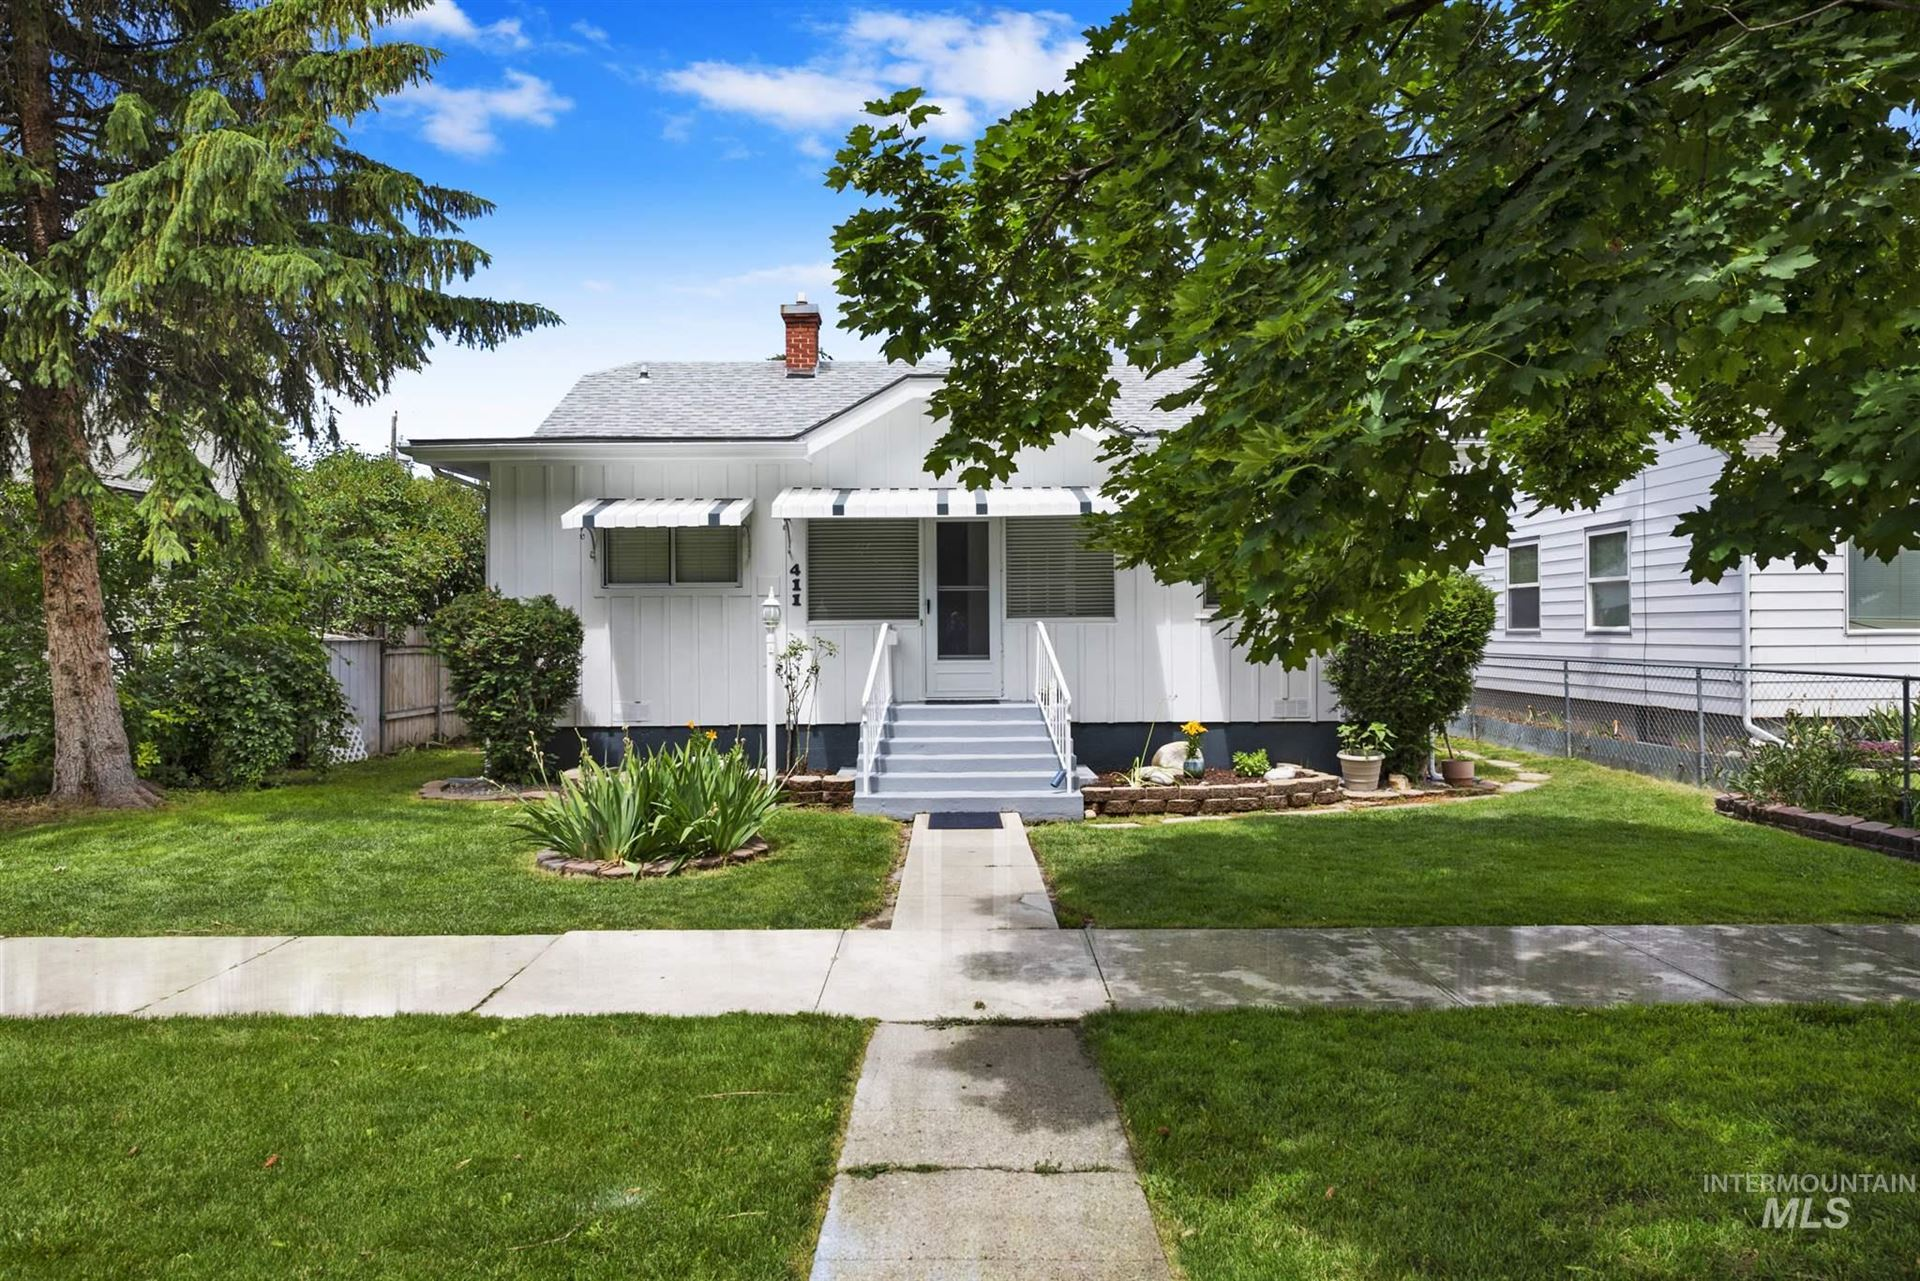 411 17th Ave S., Nampa, ID 83651 - MLS#: 98770974